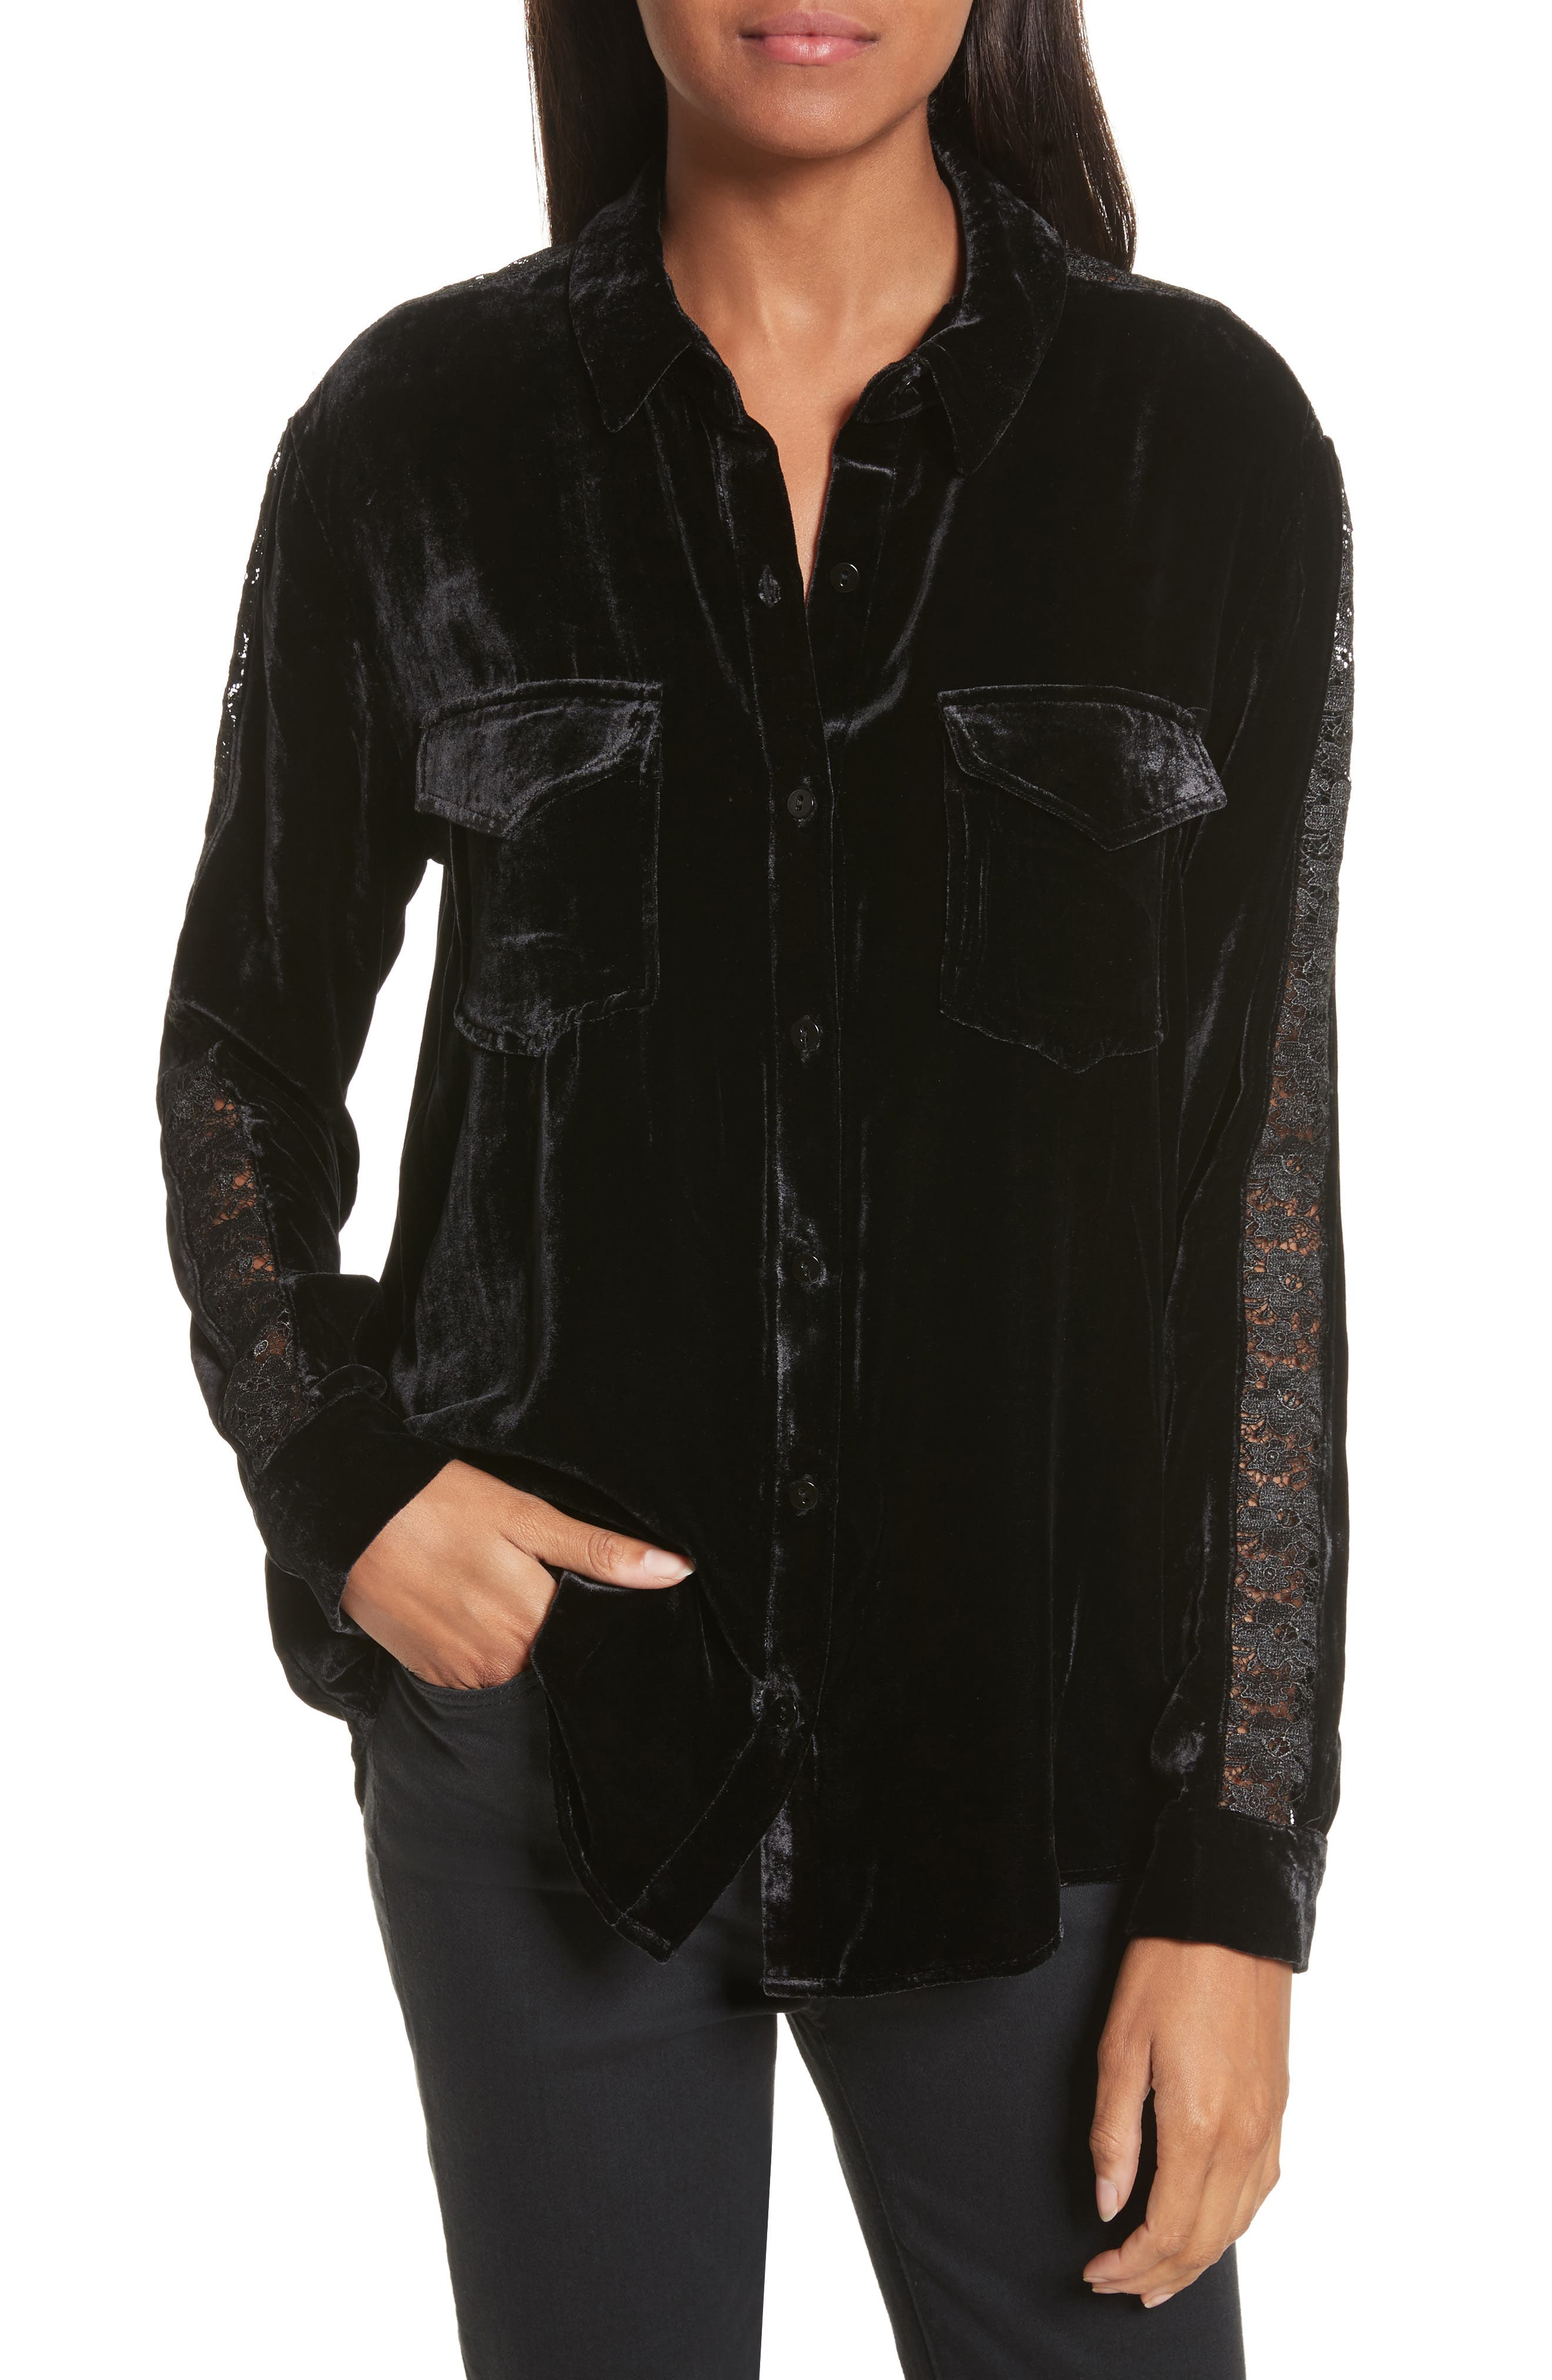 Main Image - The Kooples Lace Trim Velvet Shirt